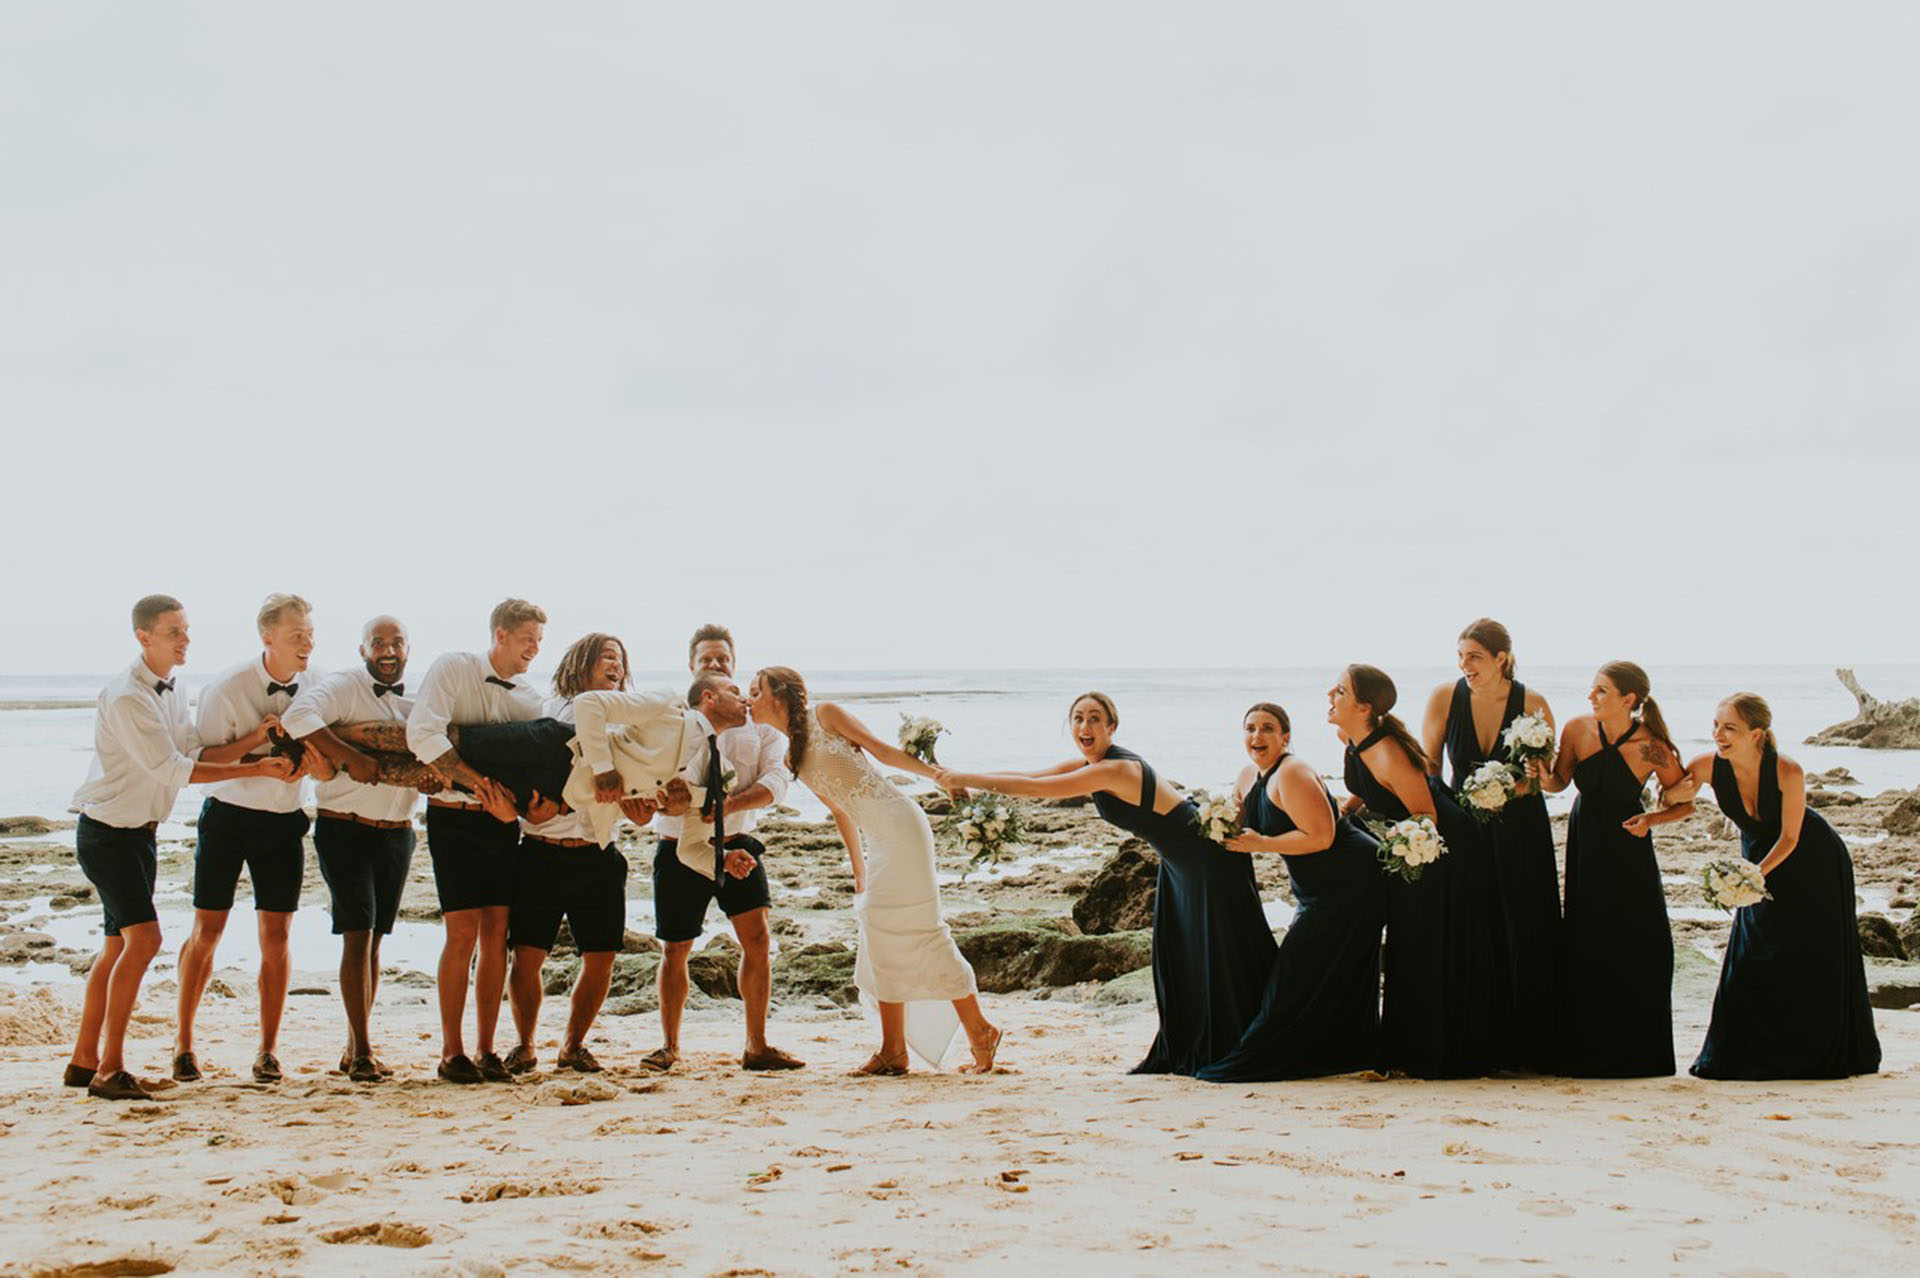 Bali Wedding Budget | Bali Wedding Packages All Inclusive